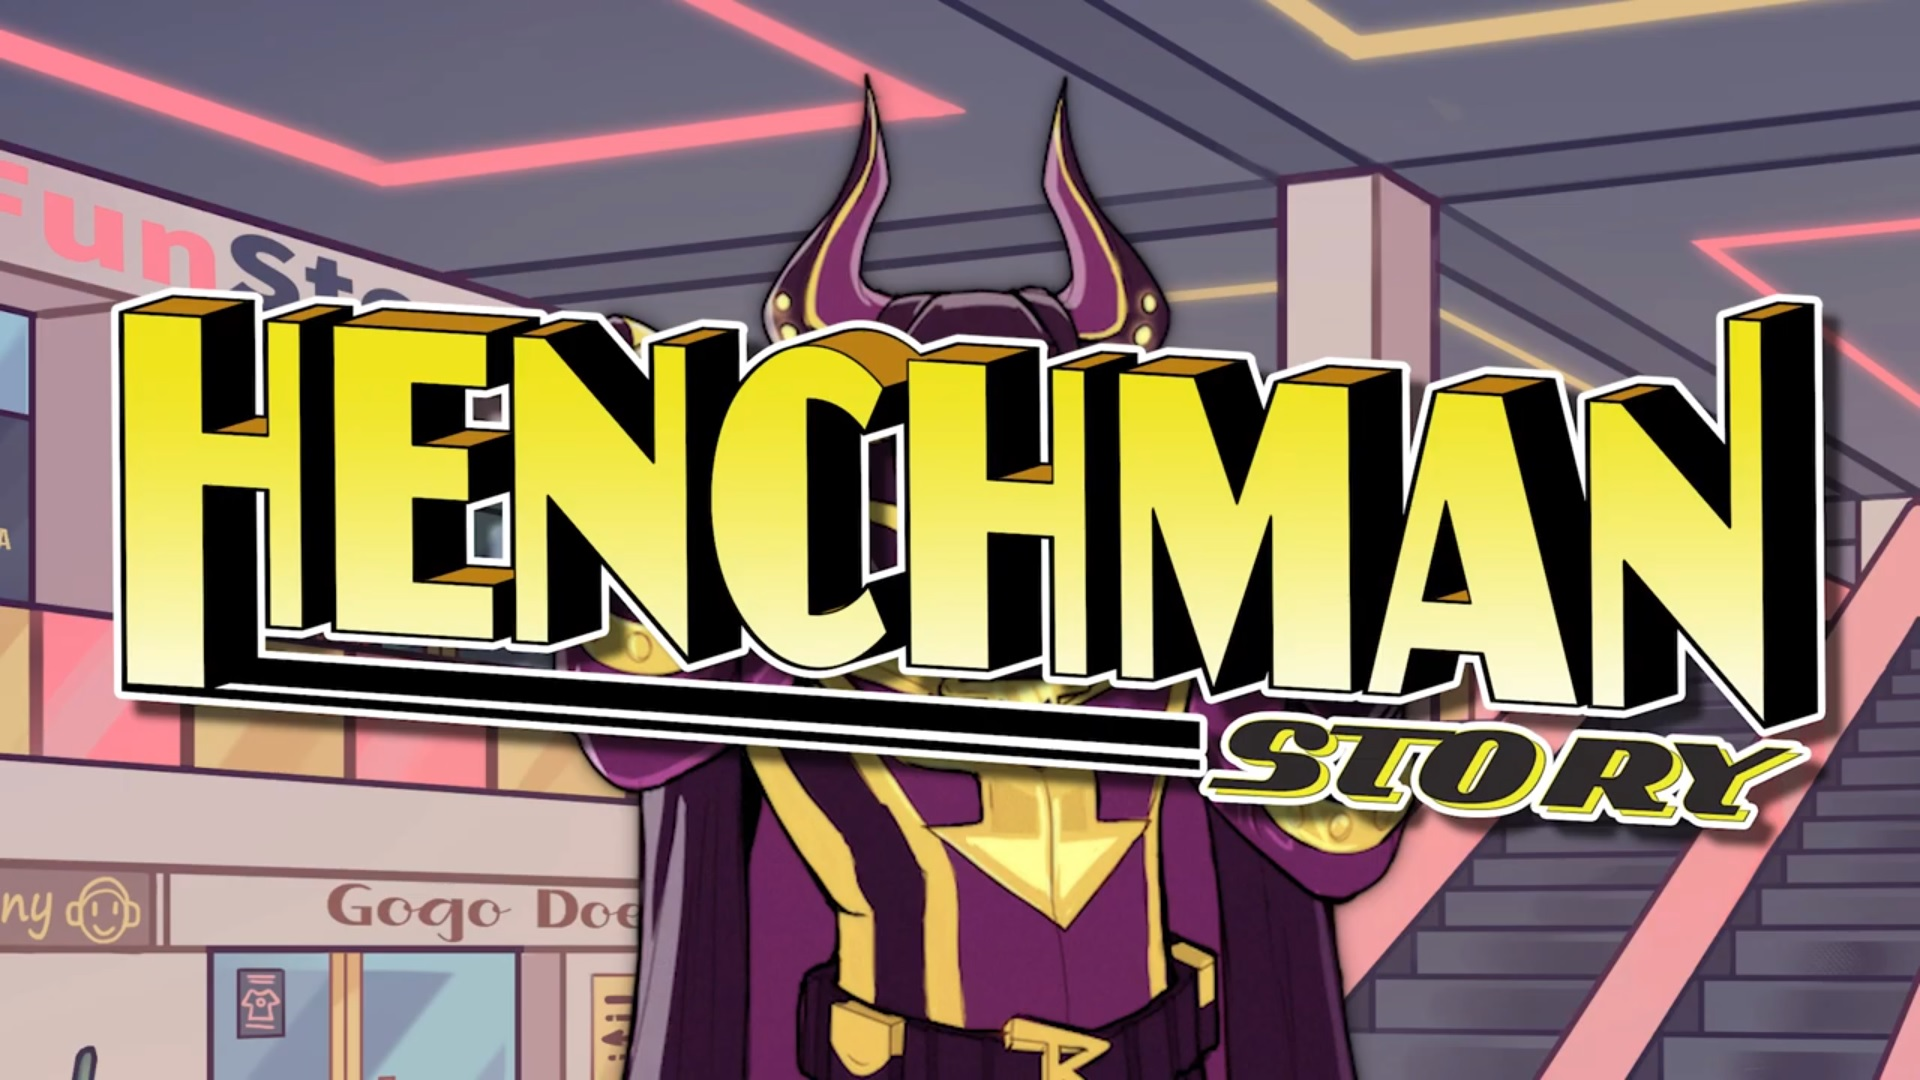 Outer Worlds writer announces launch of narrative adventure Henchman Story  - BunnyGaming.com